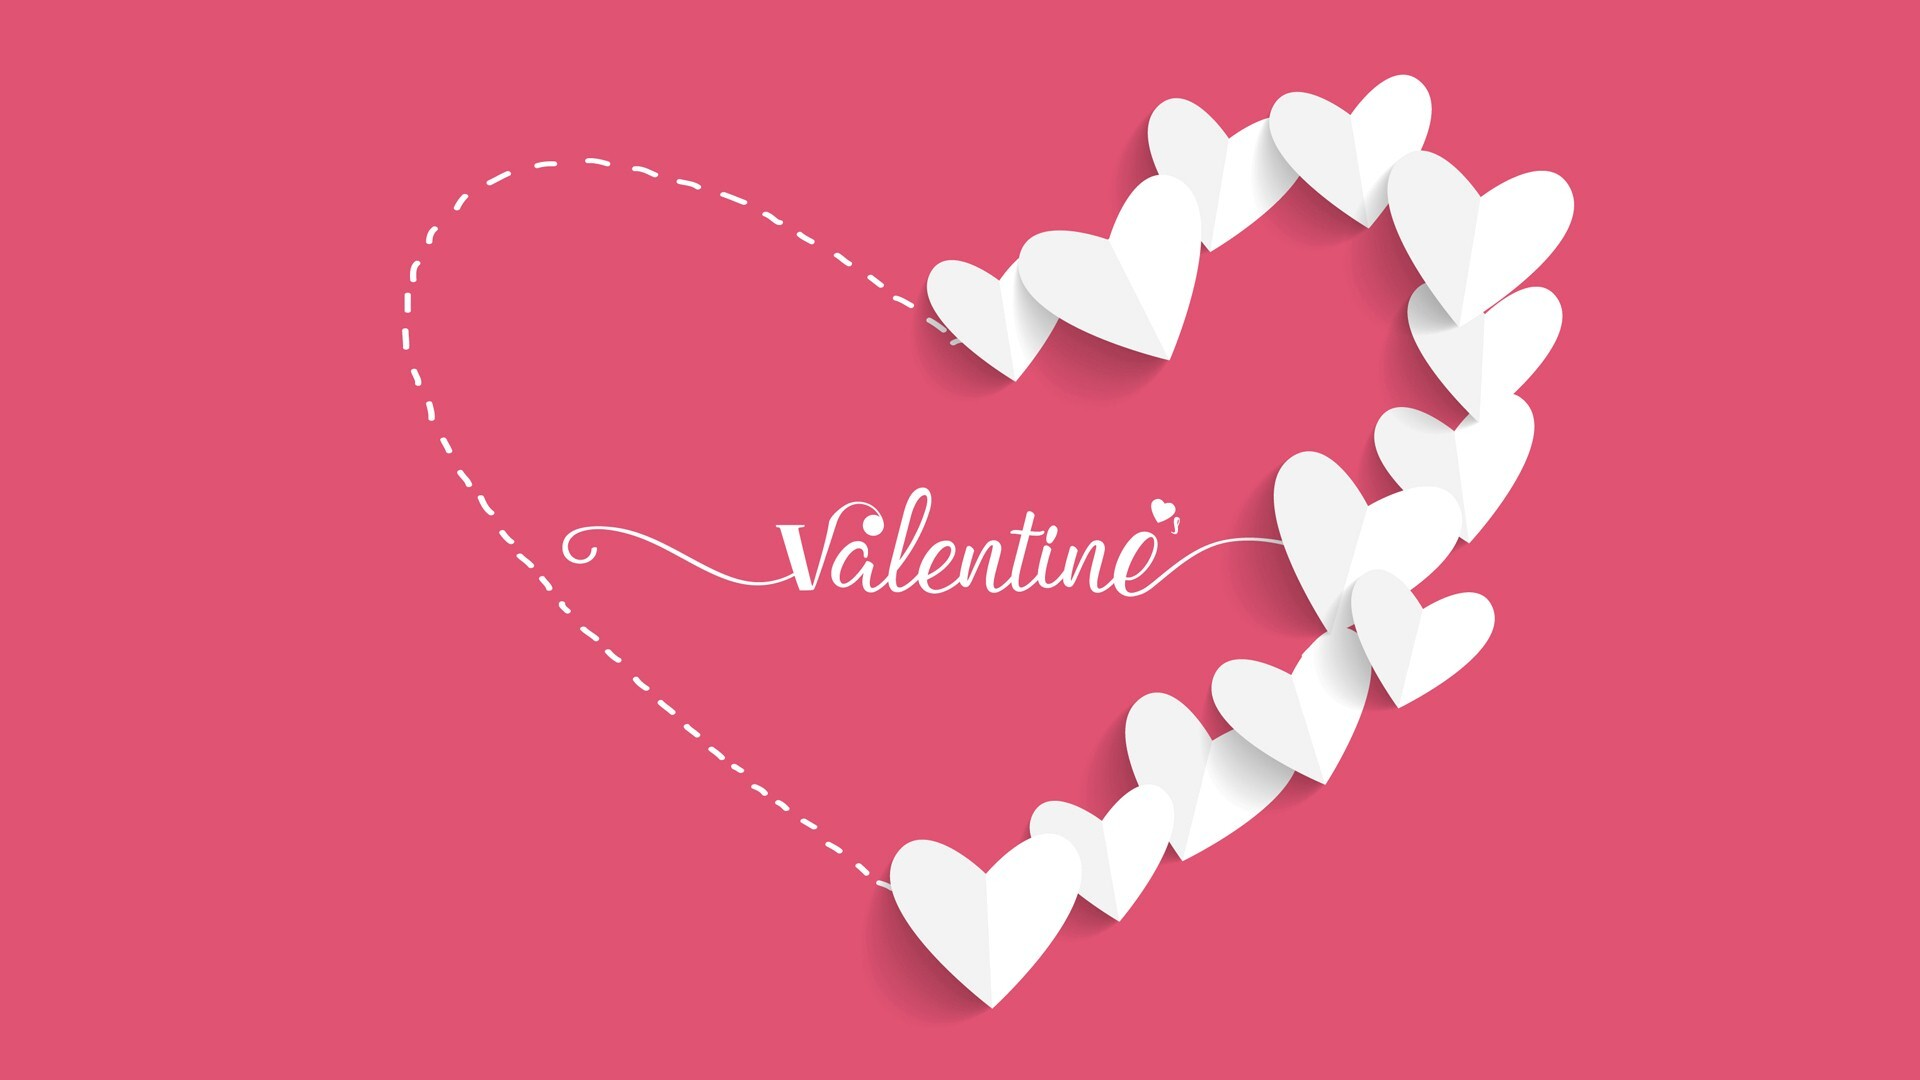 Beautiful Pink Valentine Wallpaper